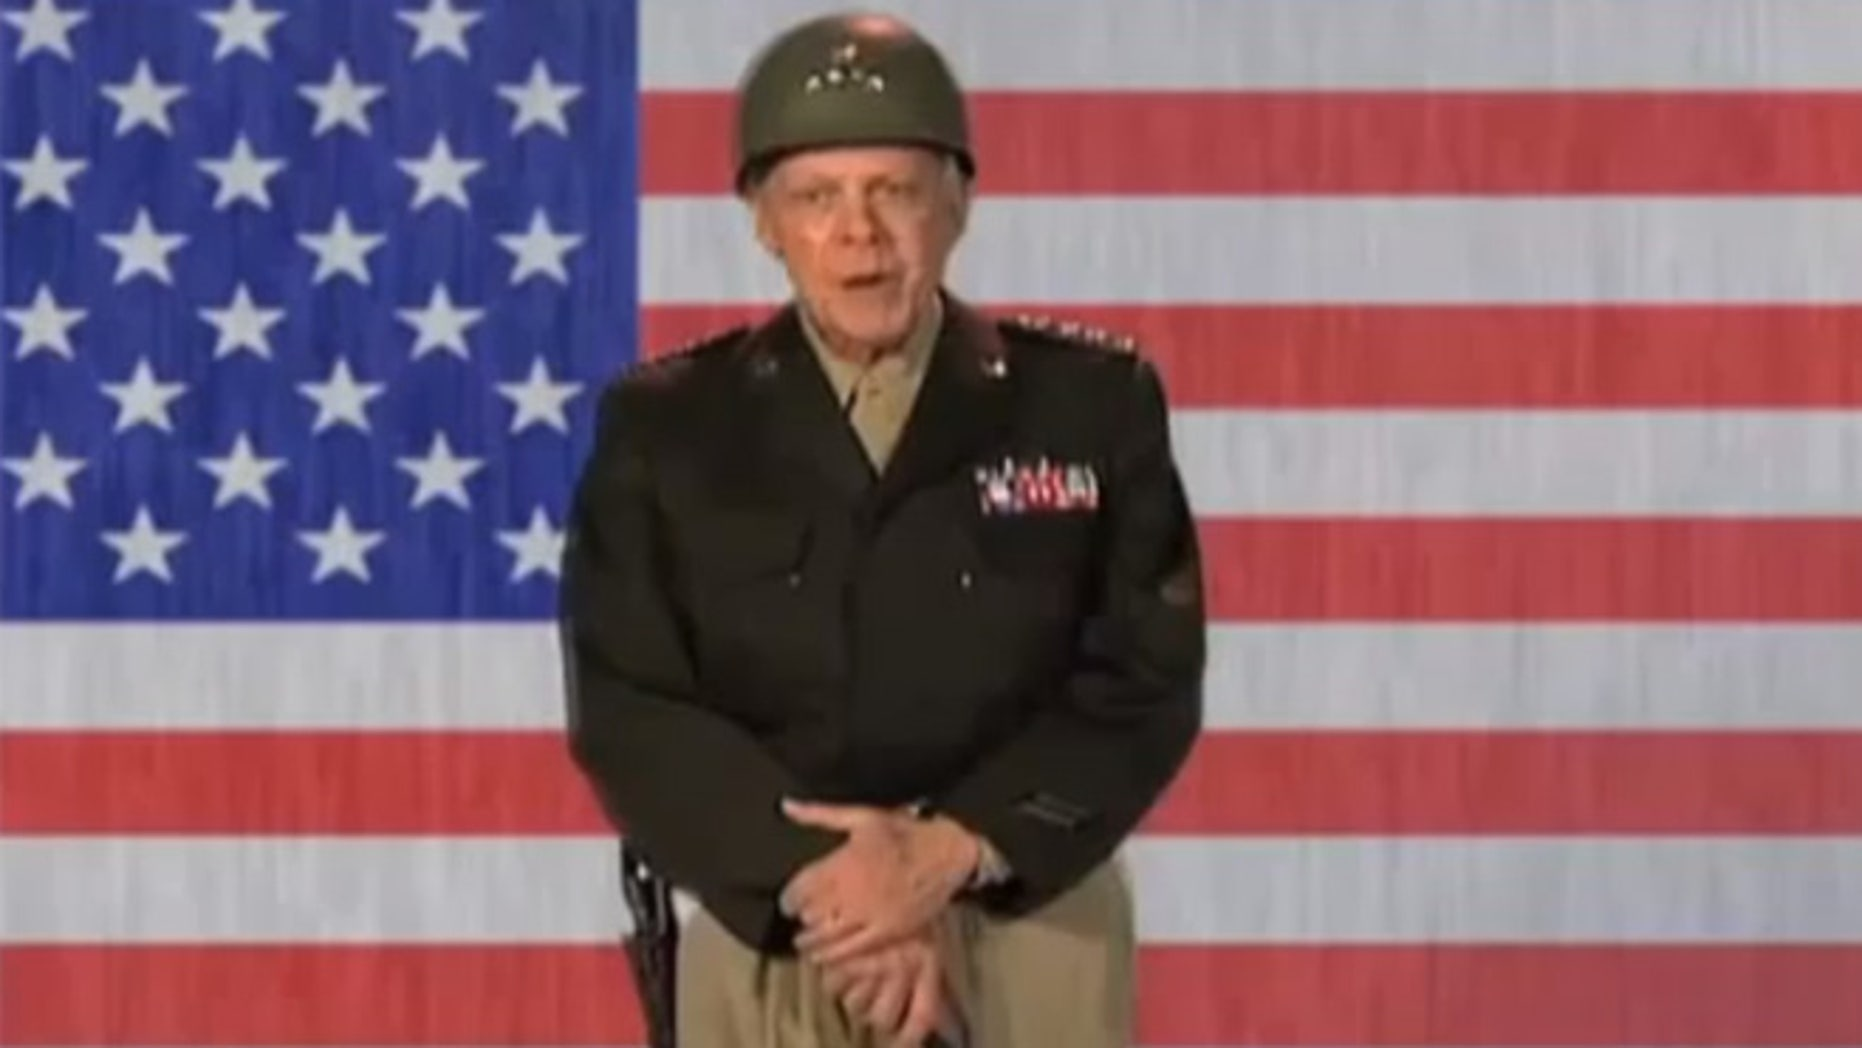 Shown here is an image from the 'Patton' parody produced for a Veterans Affairs department conference in 2011.